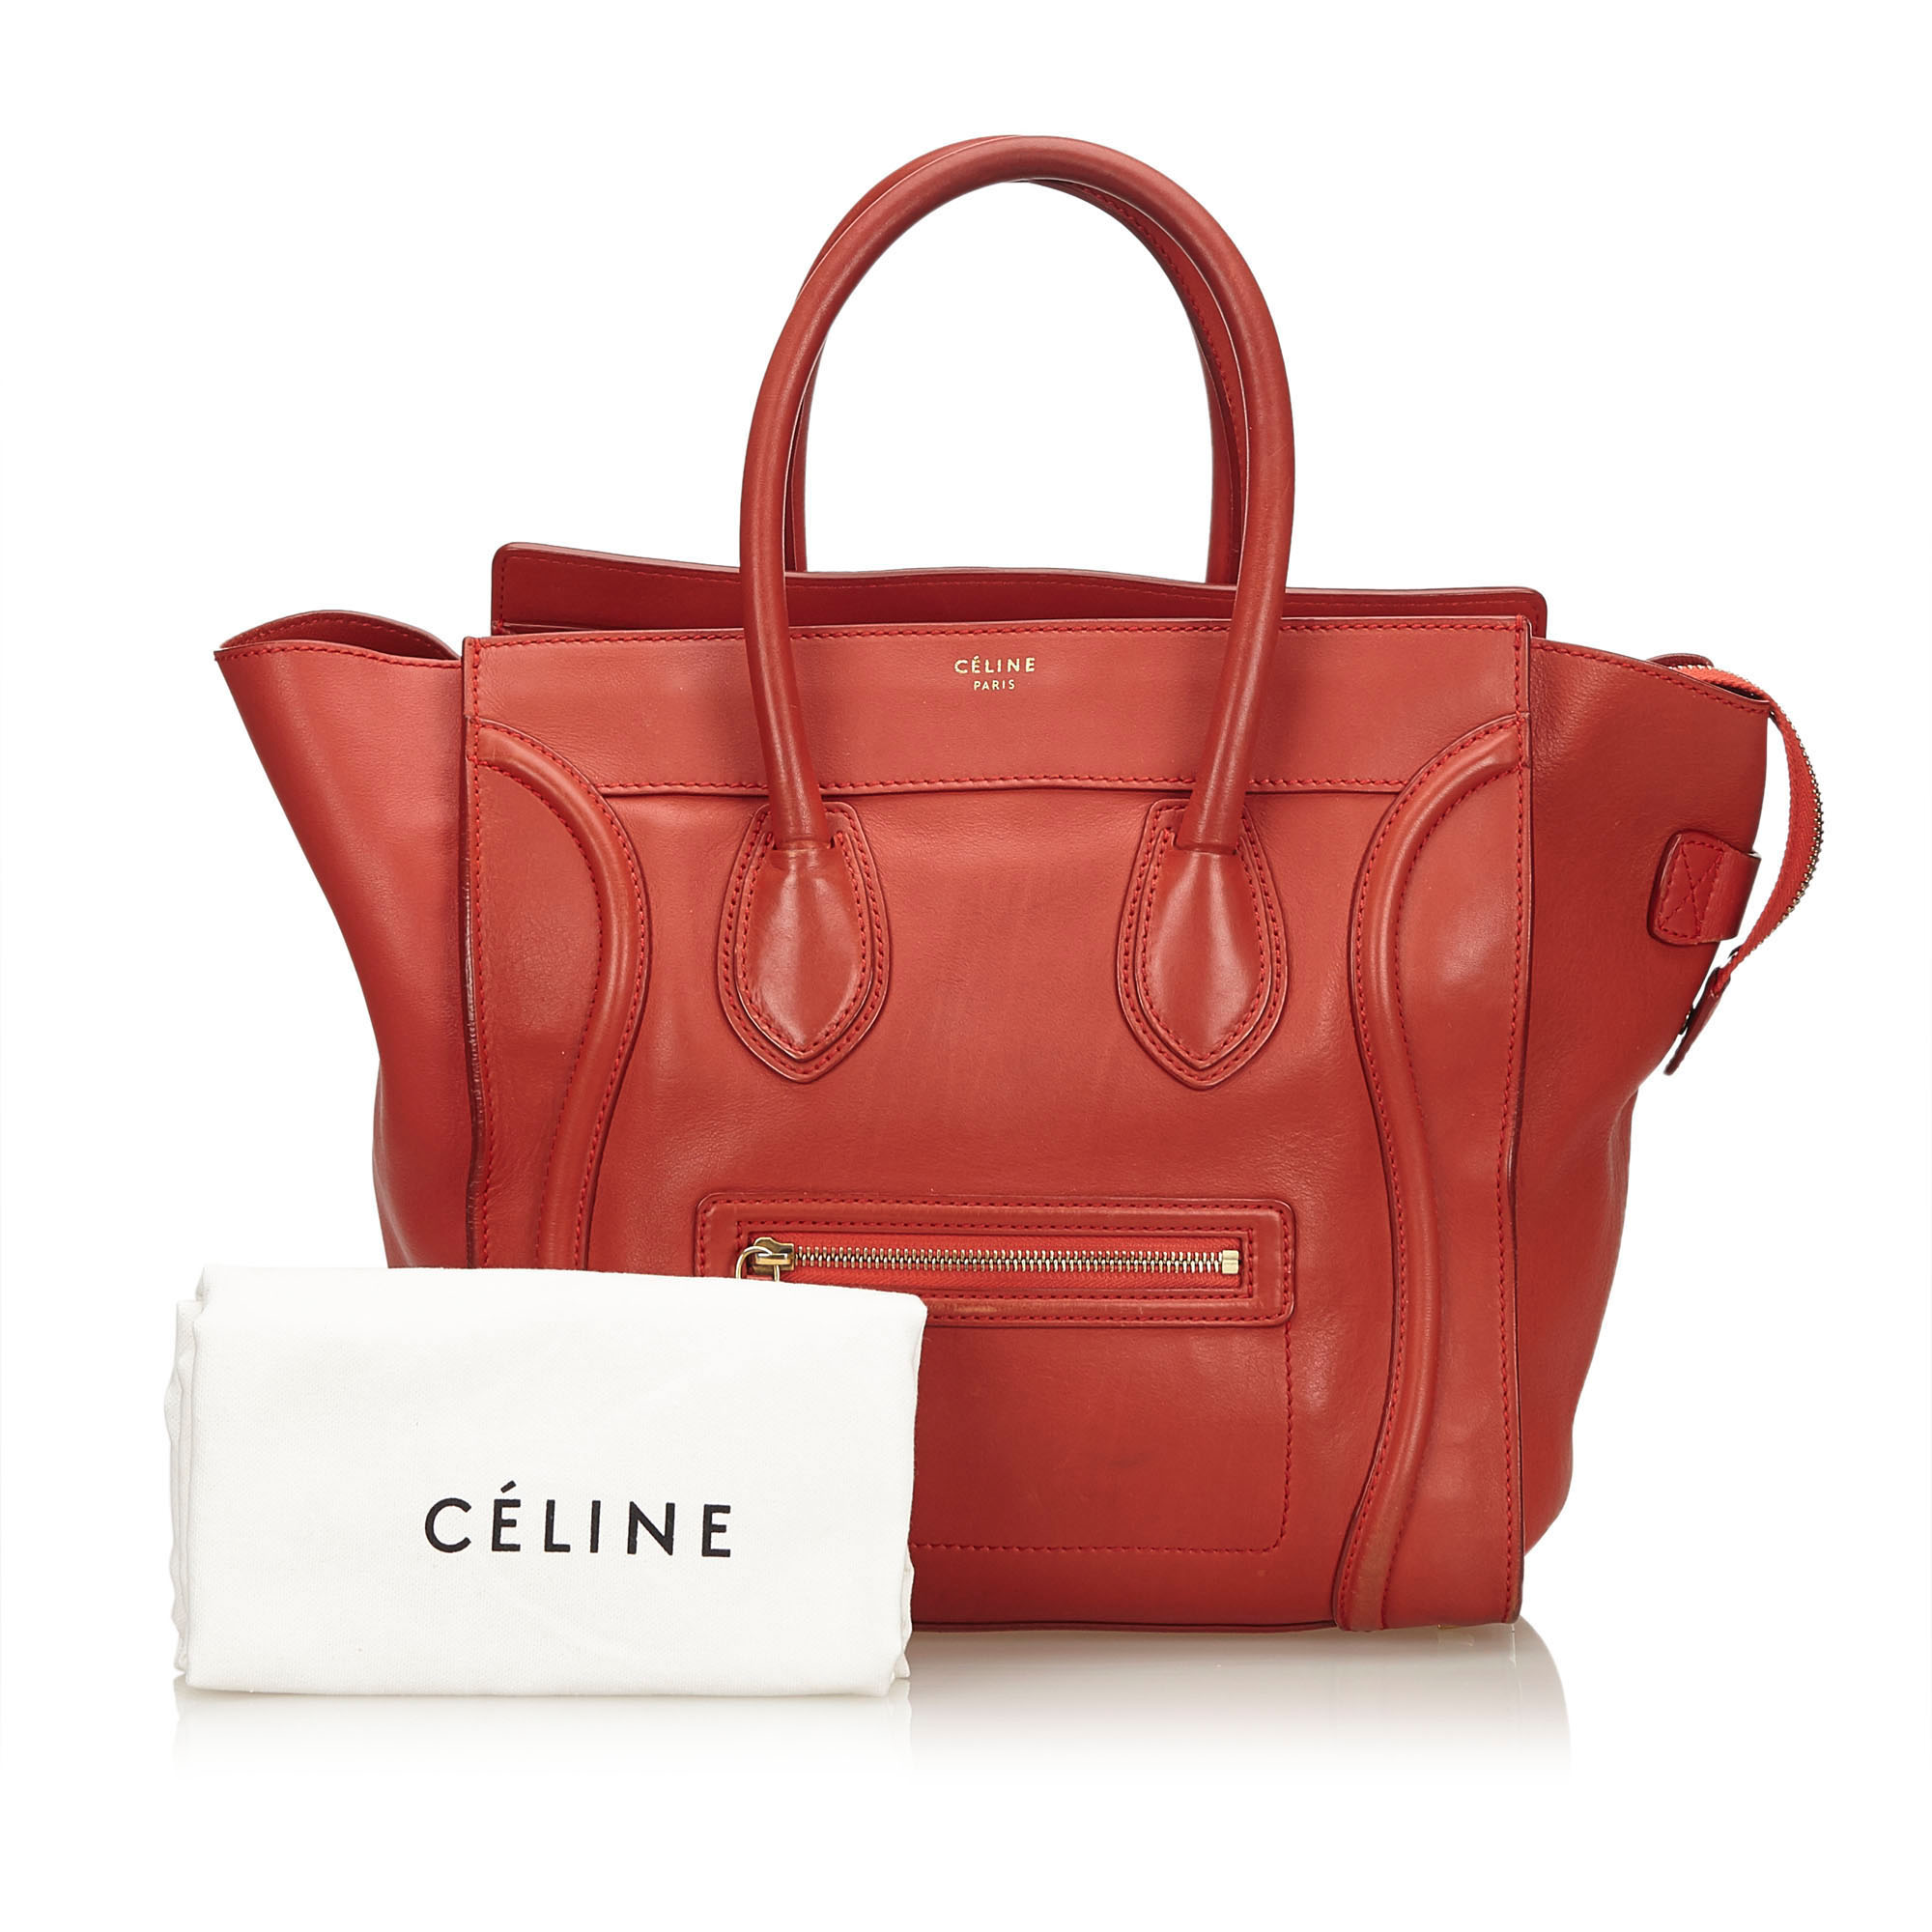 Celine Red Leather Luggage Tote Bag